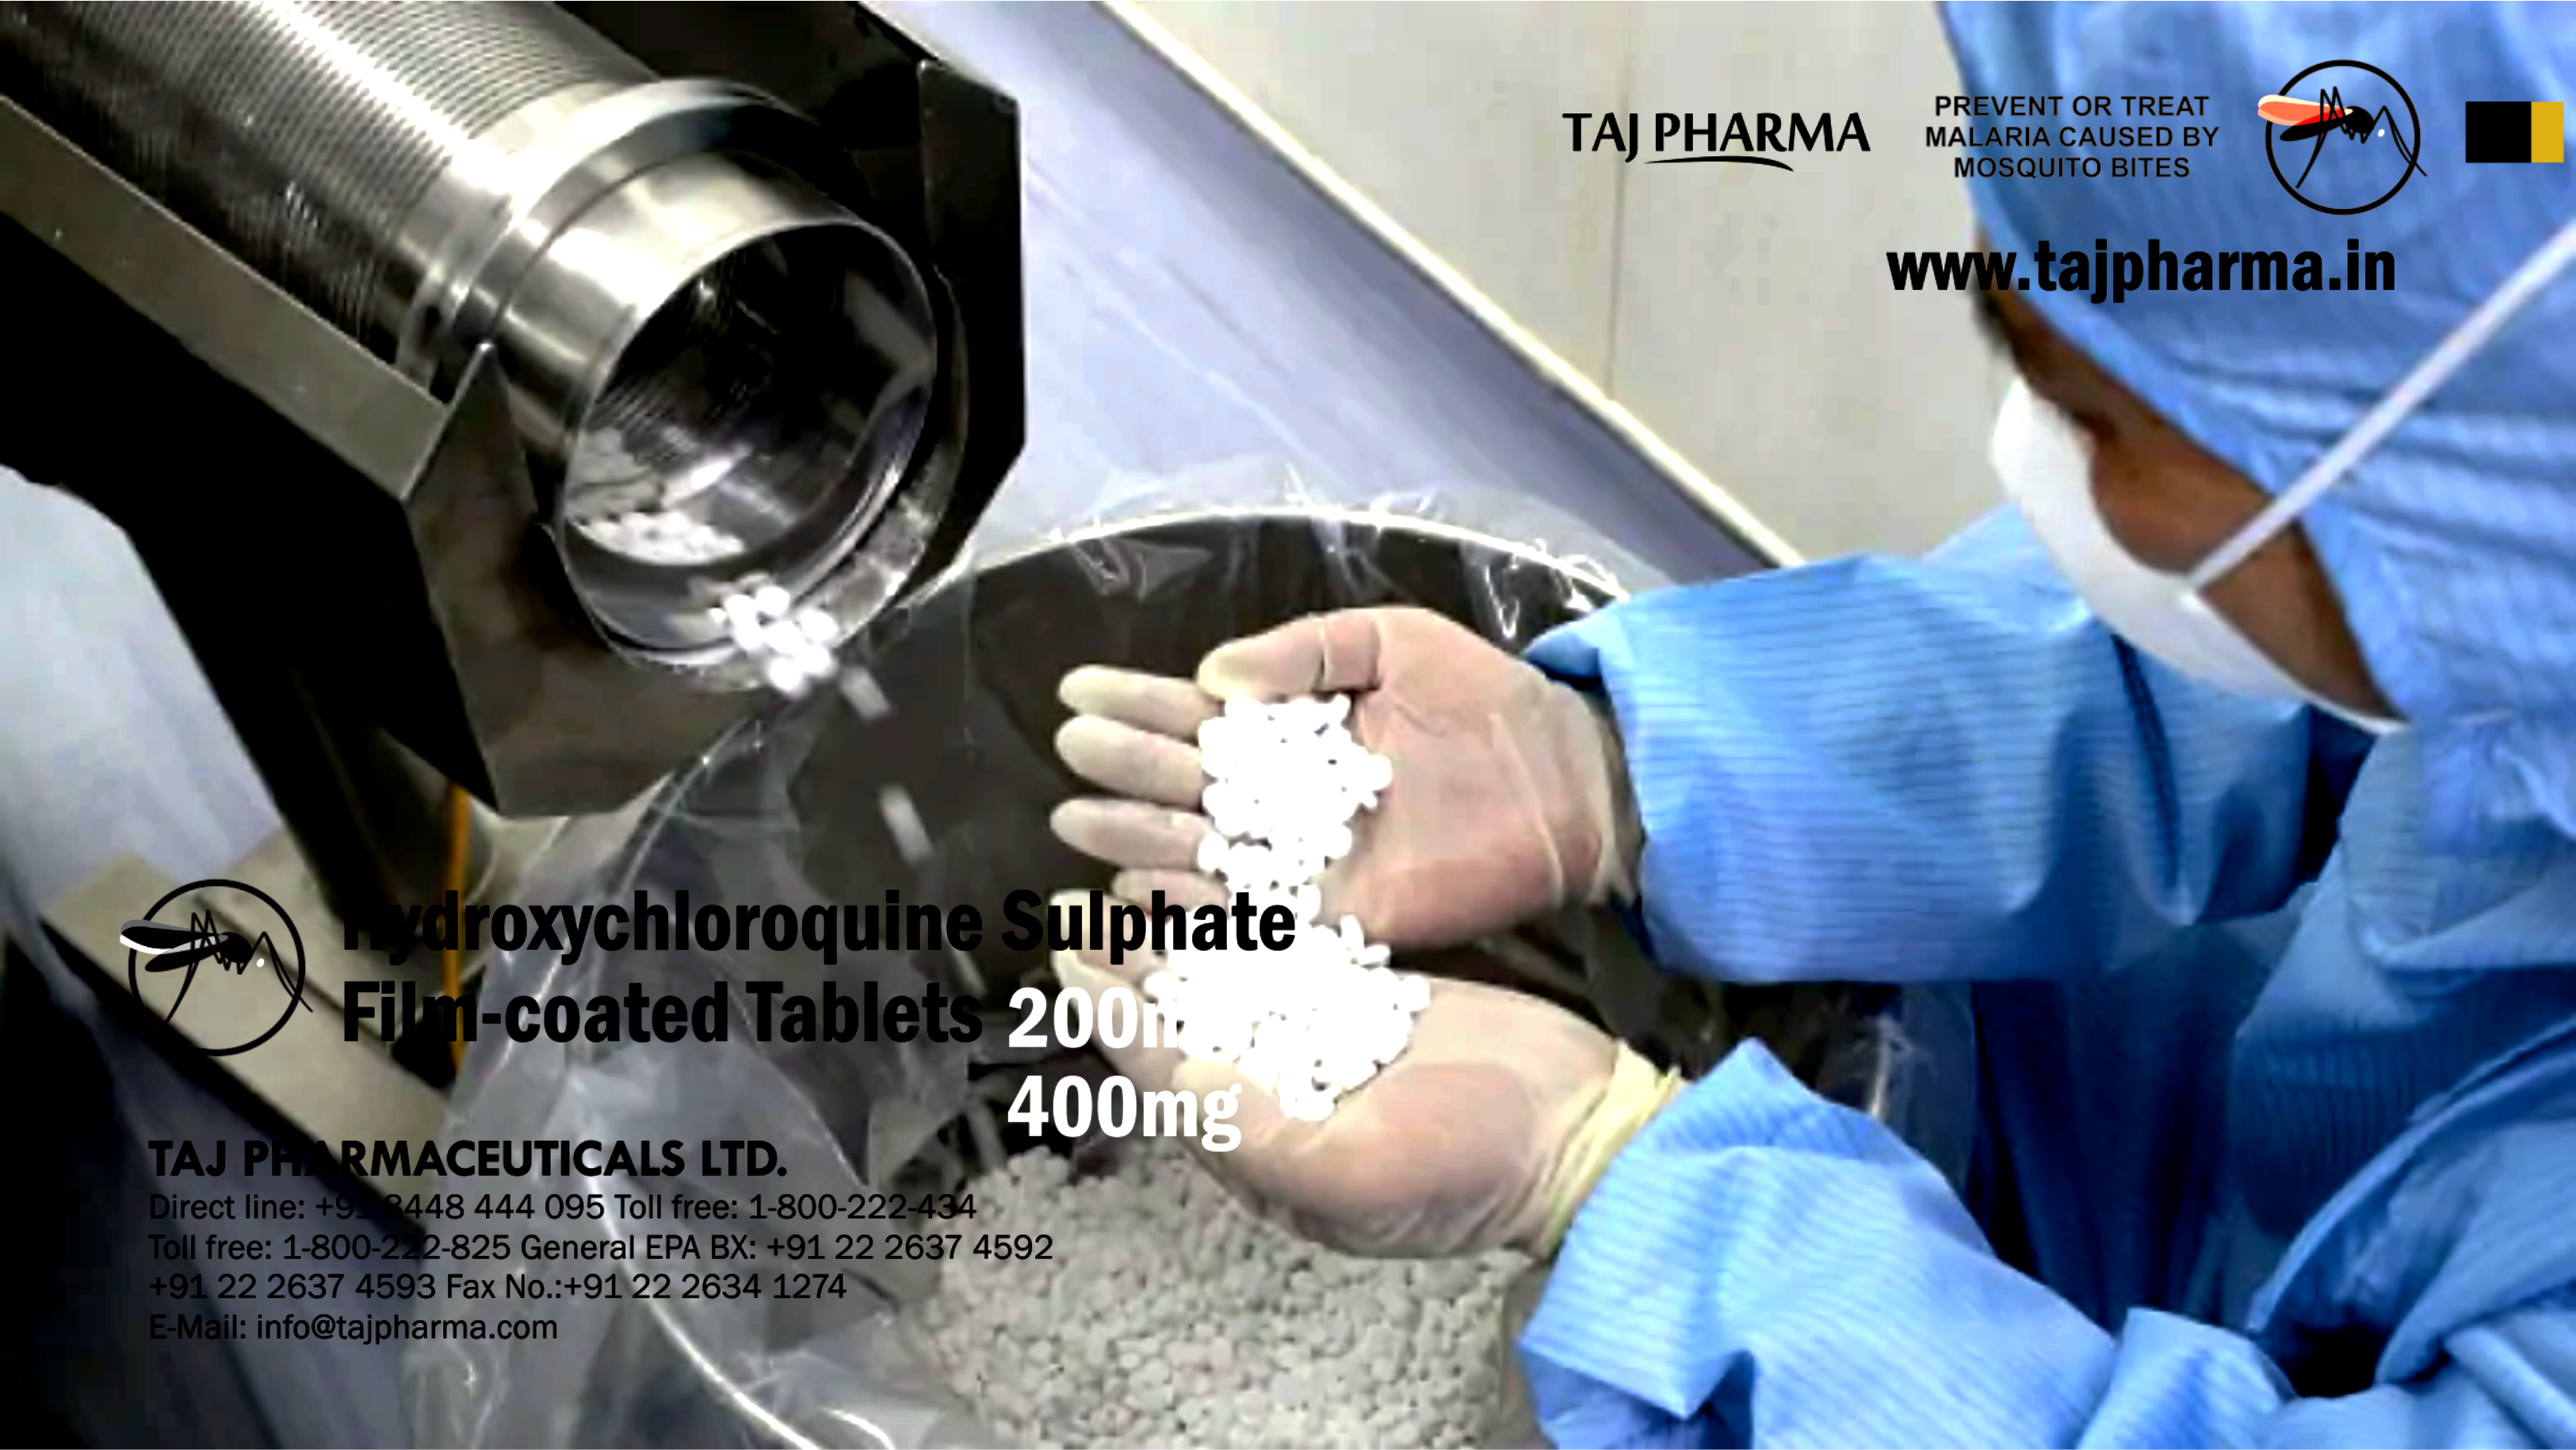 Taj Pharmaceuticals as Manufacturer of Hydroxychloroquine sulphate tablets